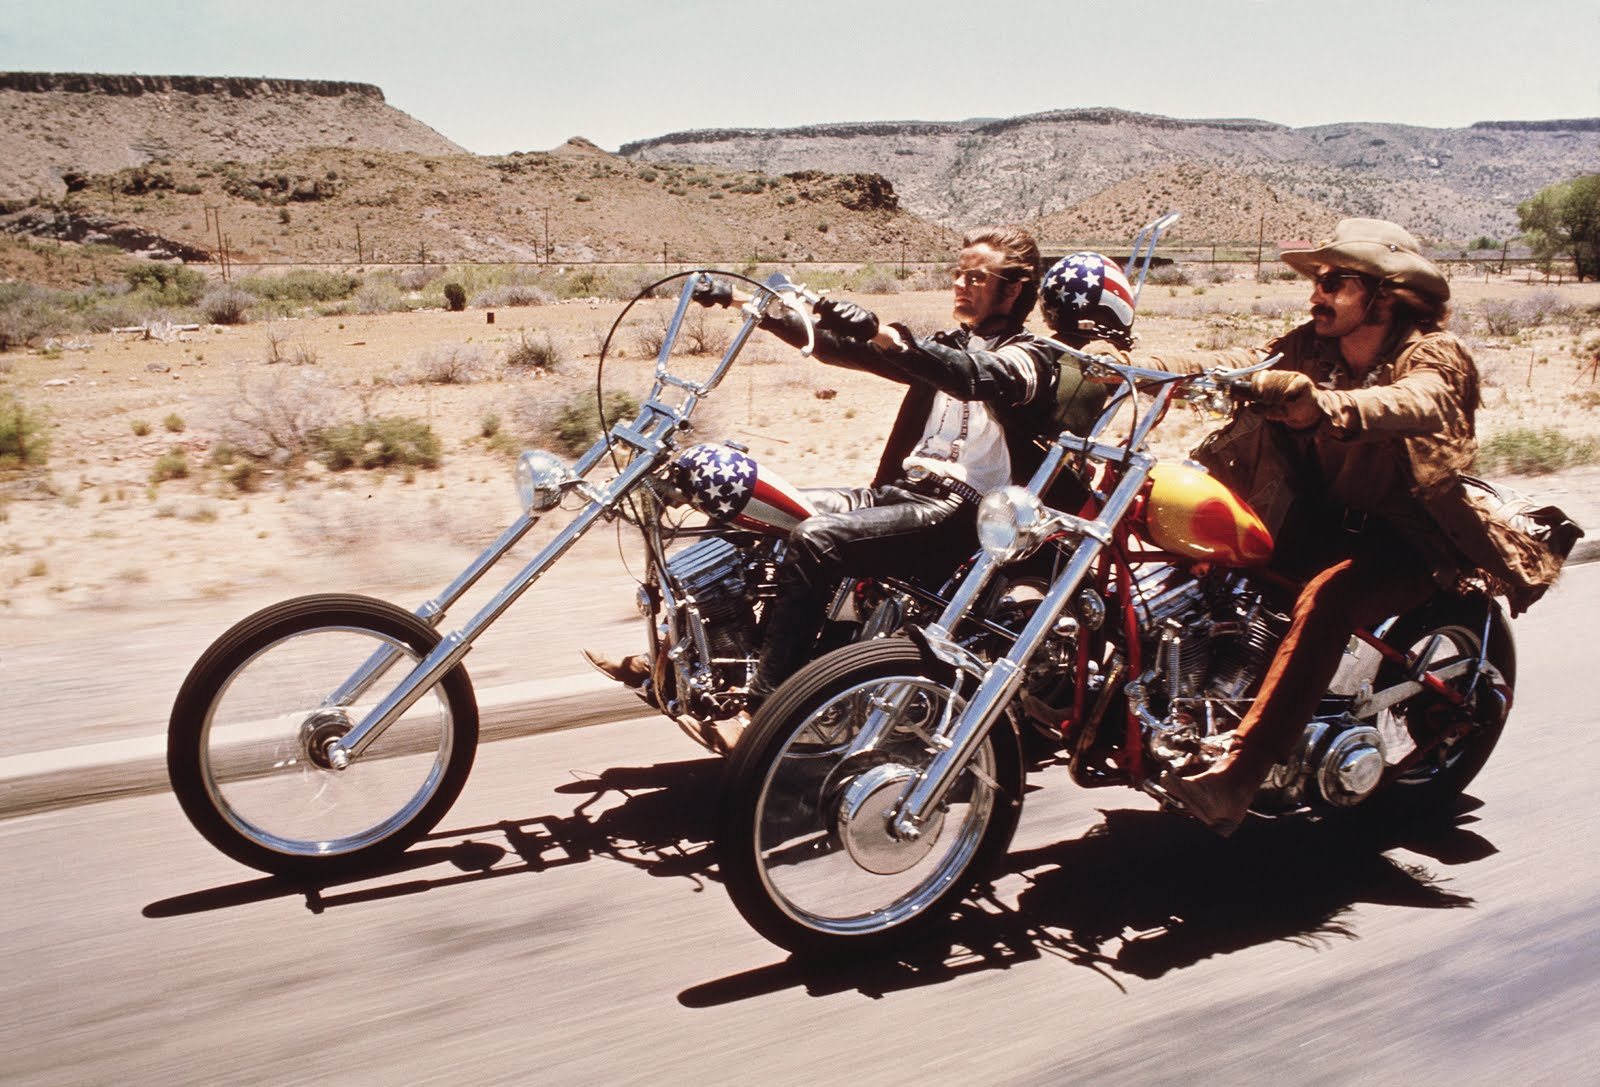 EASY RIDER MOTORCYCLE TOUR